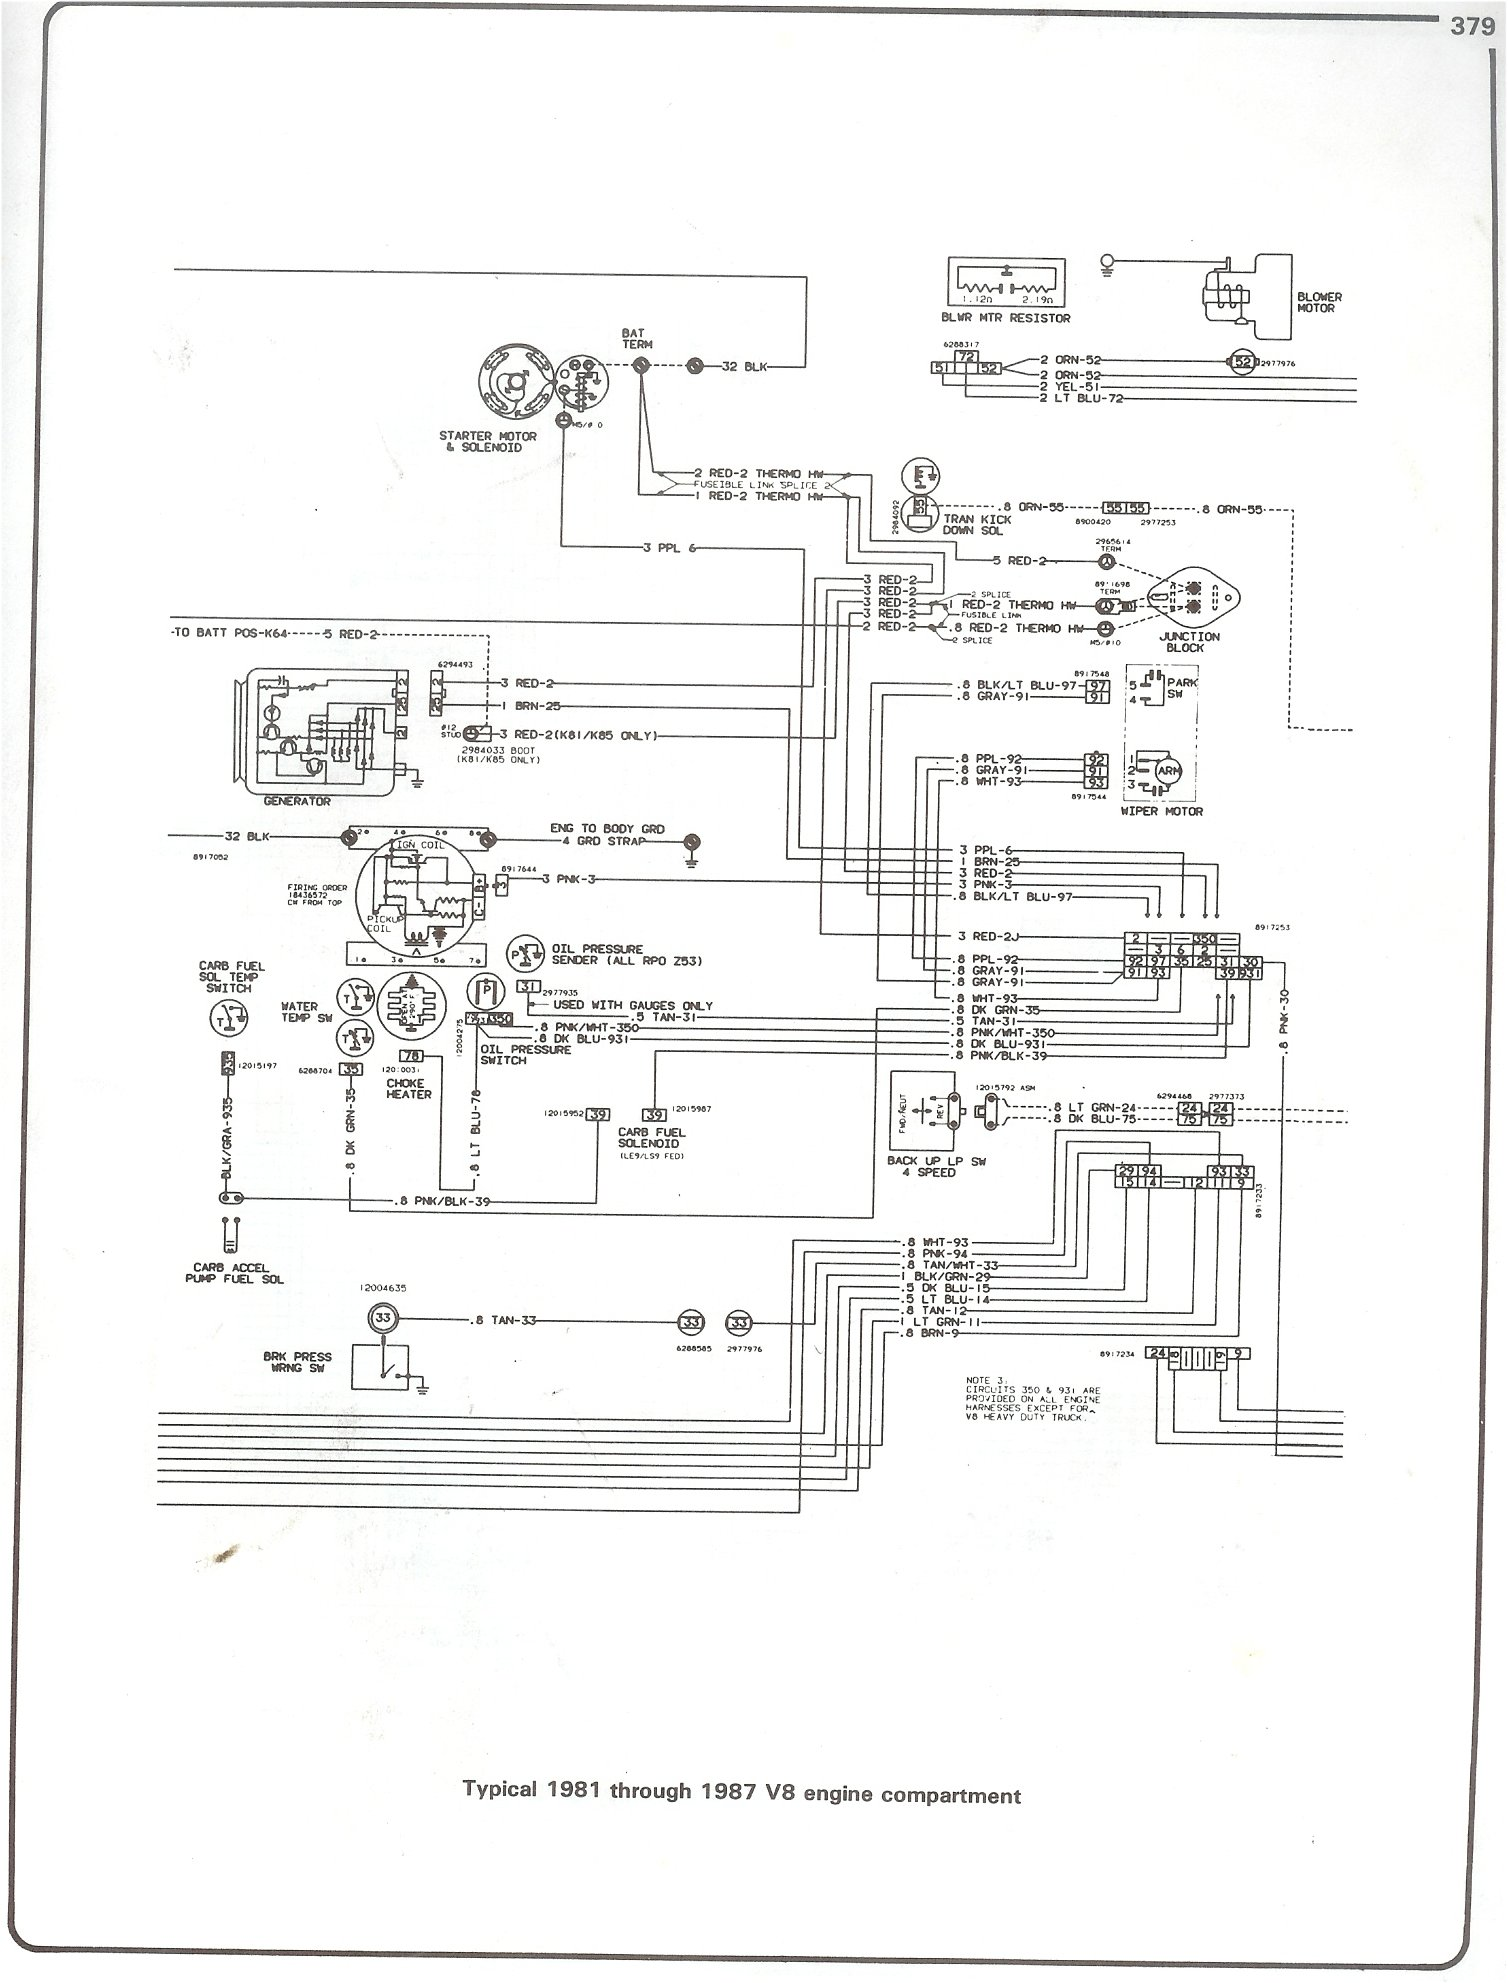 87 corvette chassis wiring diagram wiring library 81 87 v8 engine compartment